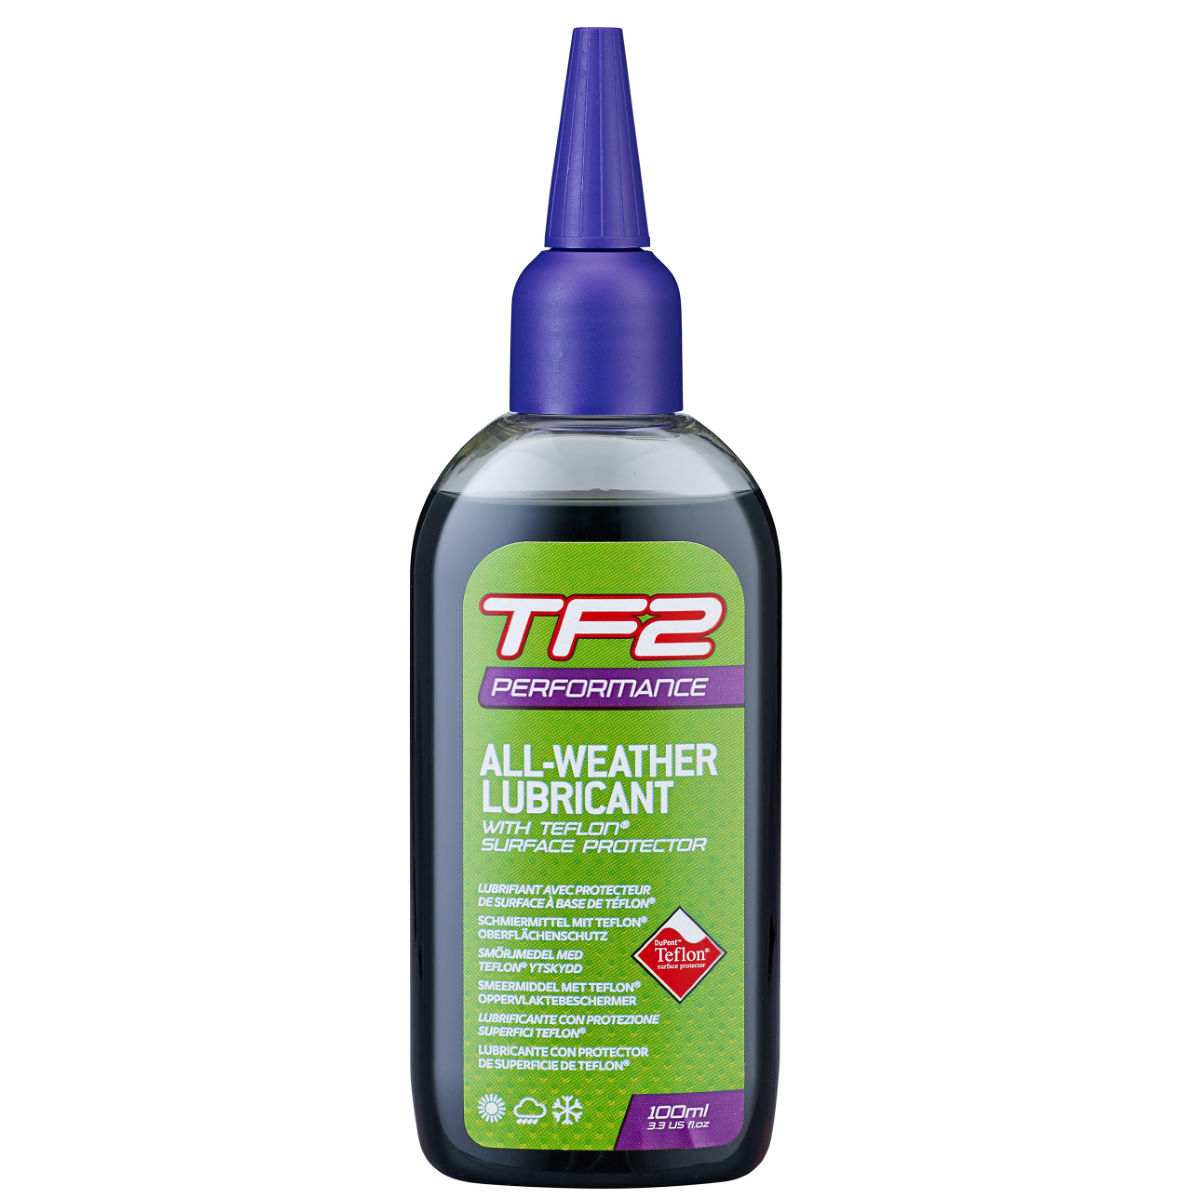 Weldtite Weldtite TF2 Performance Lube with Teflon   Lube